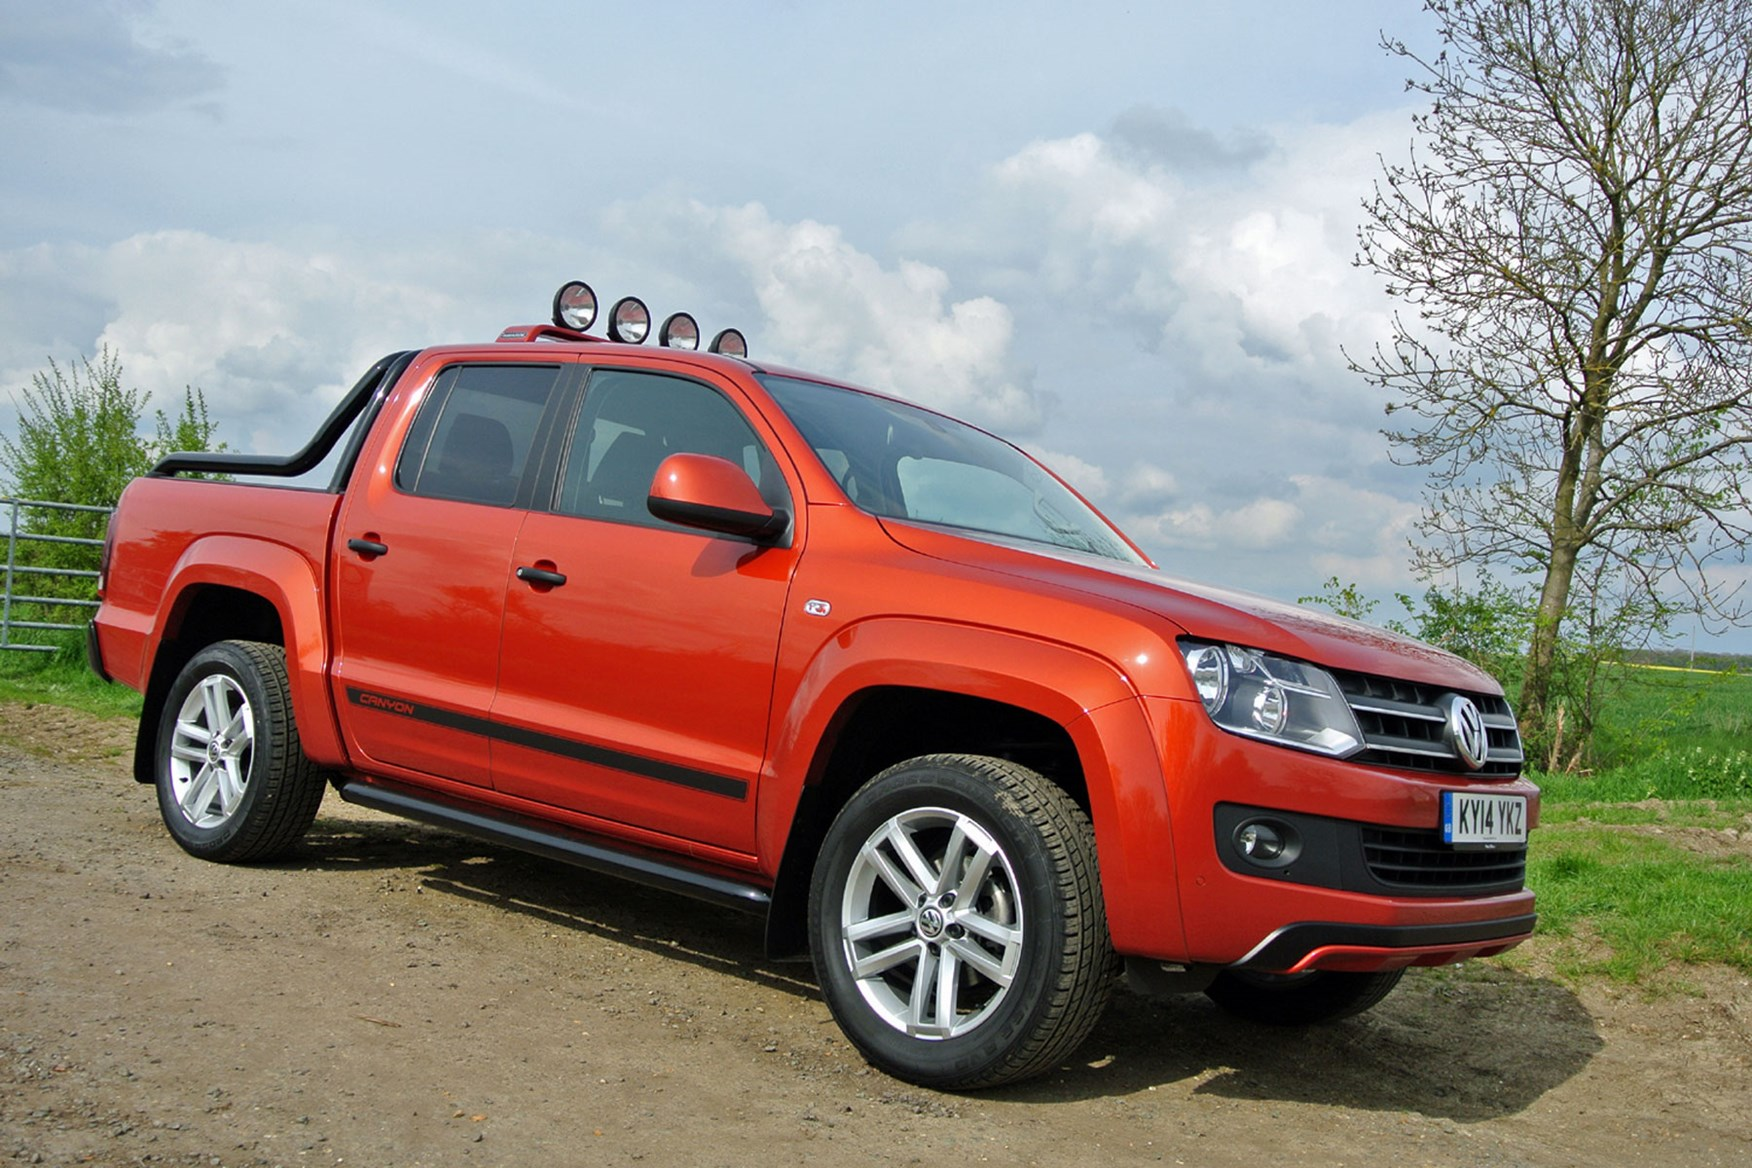 VW Amarok 2.0-litre Canyon 180hp review - front view, orange